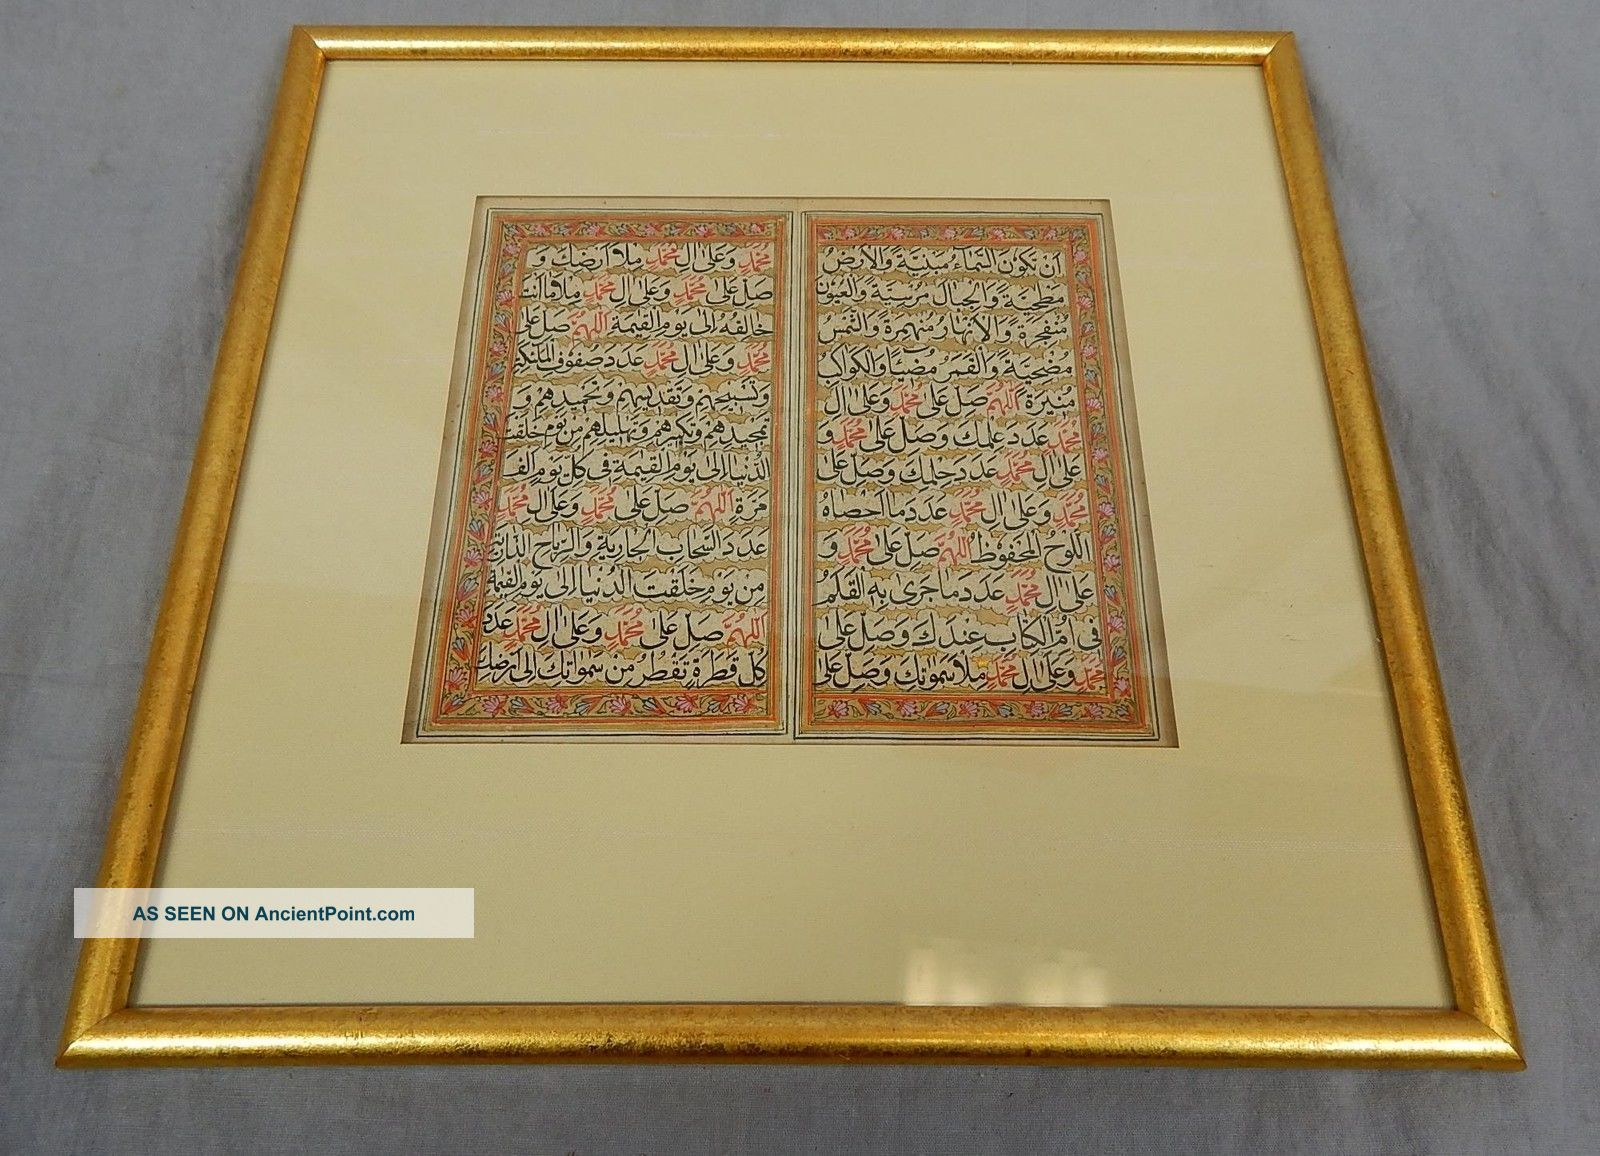 15th Century ??? Persian / Arabic Manuscript Page (framed) Middle Eastern photo